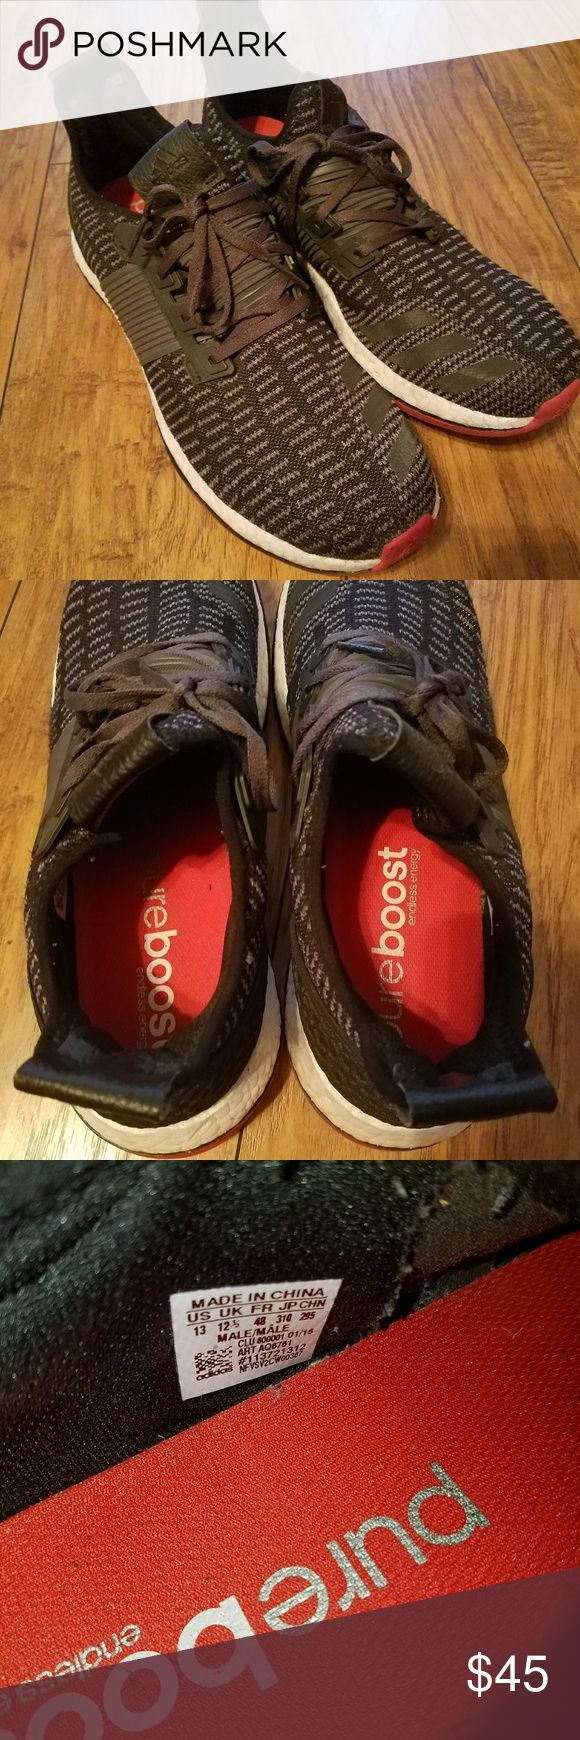 MENS ADIDAS PURE BOOST ZG SHOES In very good condition only worn 2 times adidas Shoes Athletic Shoes